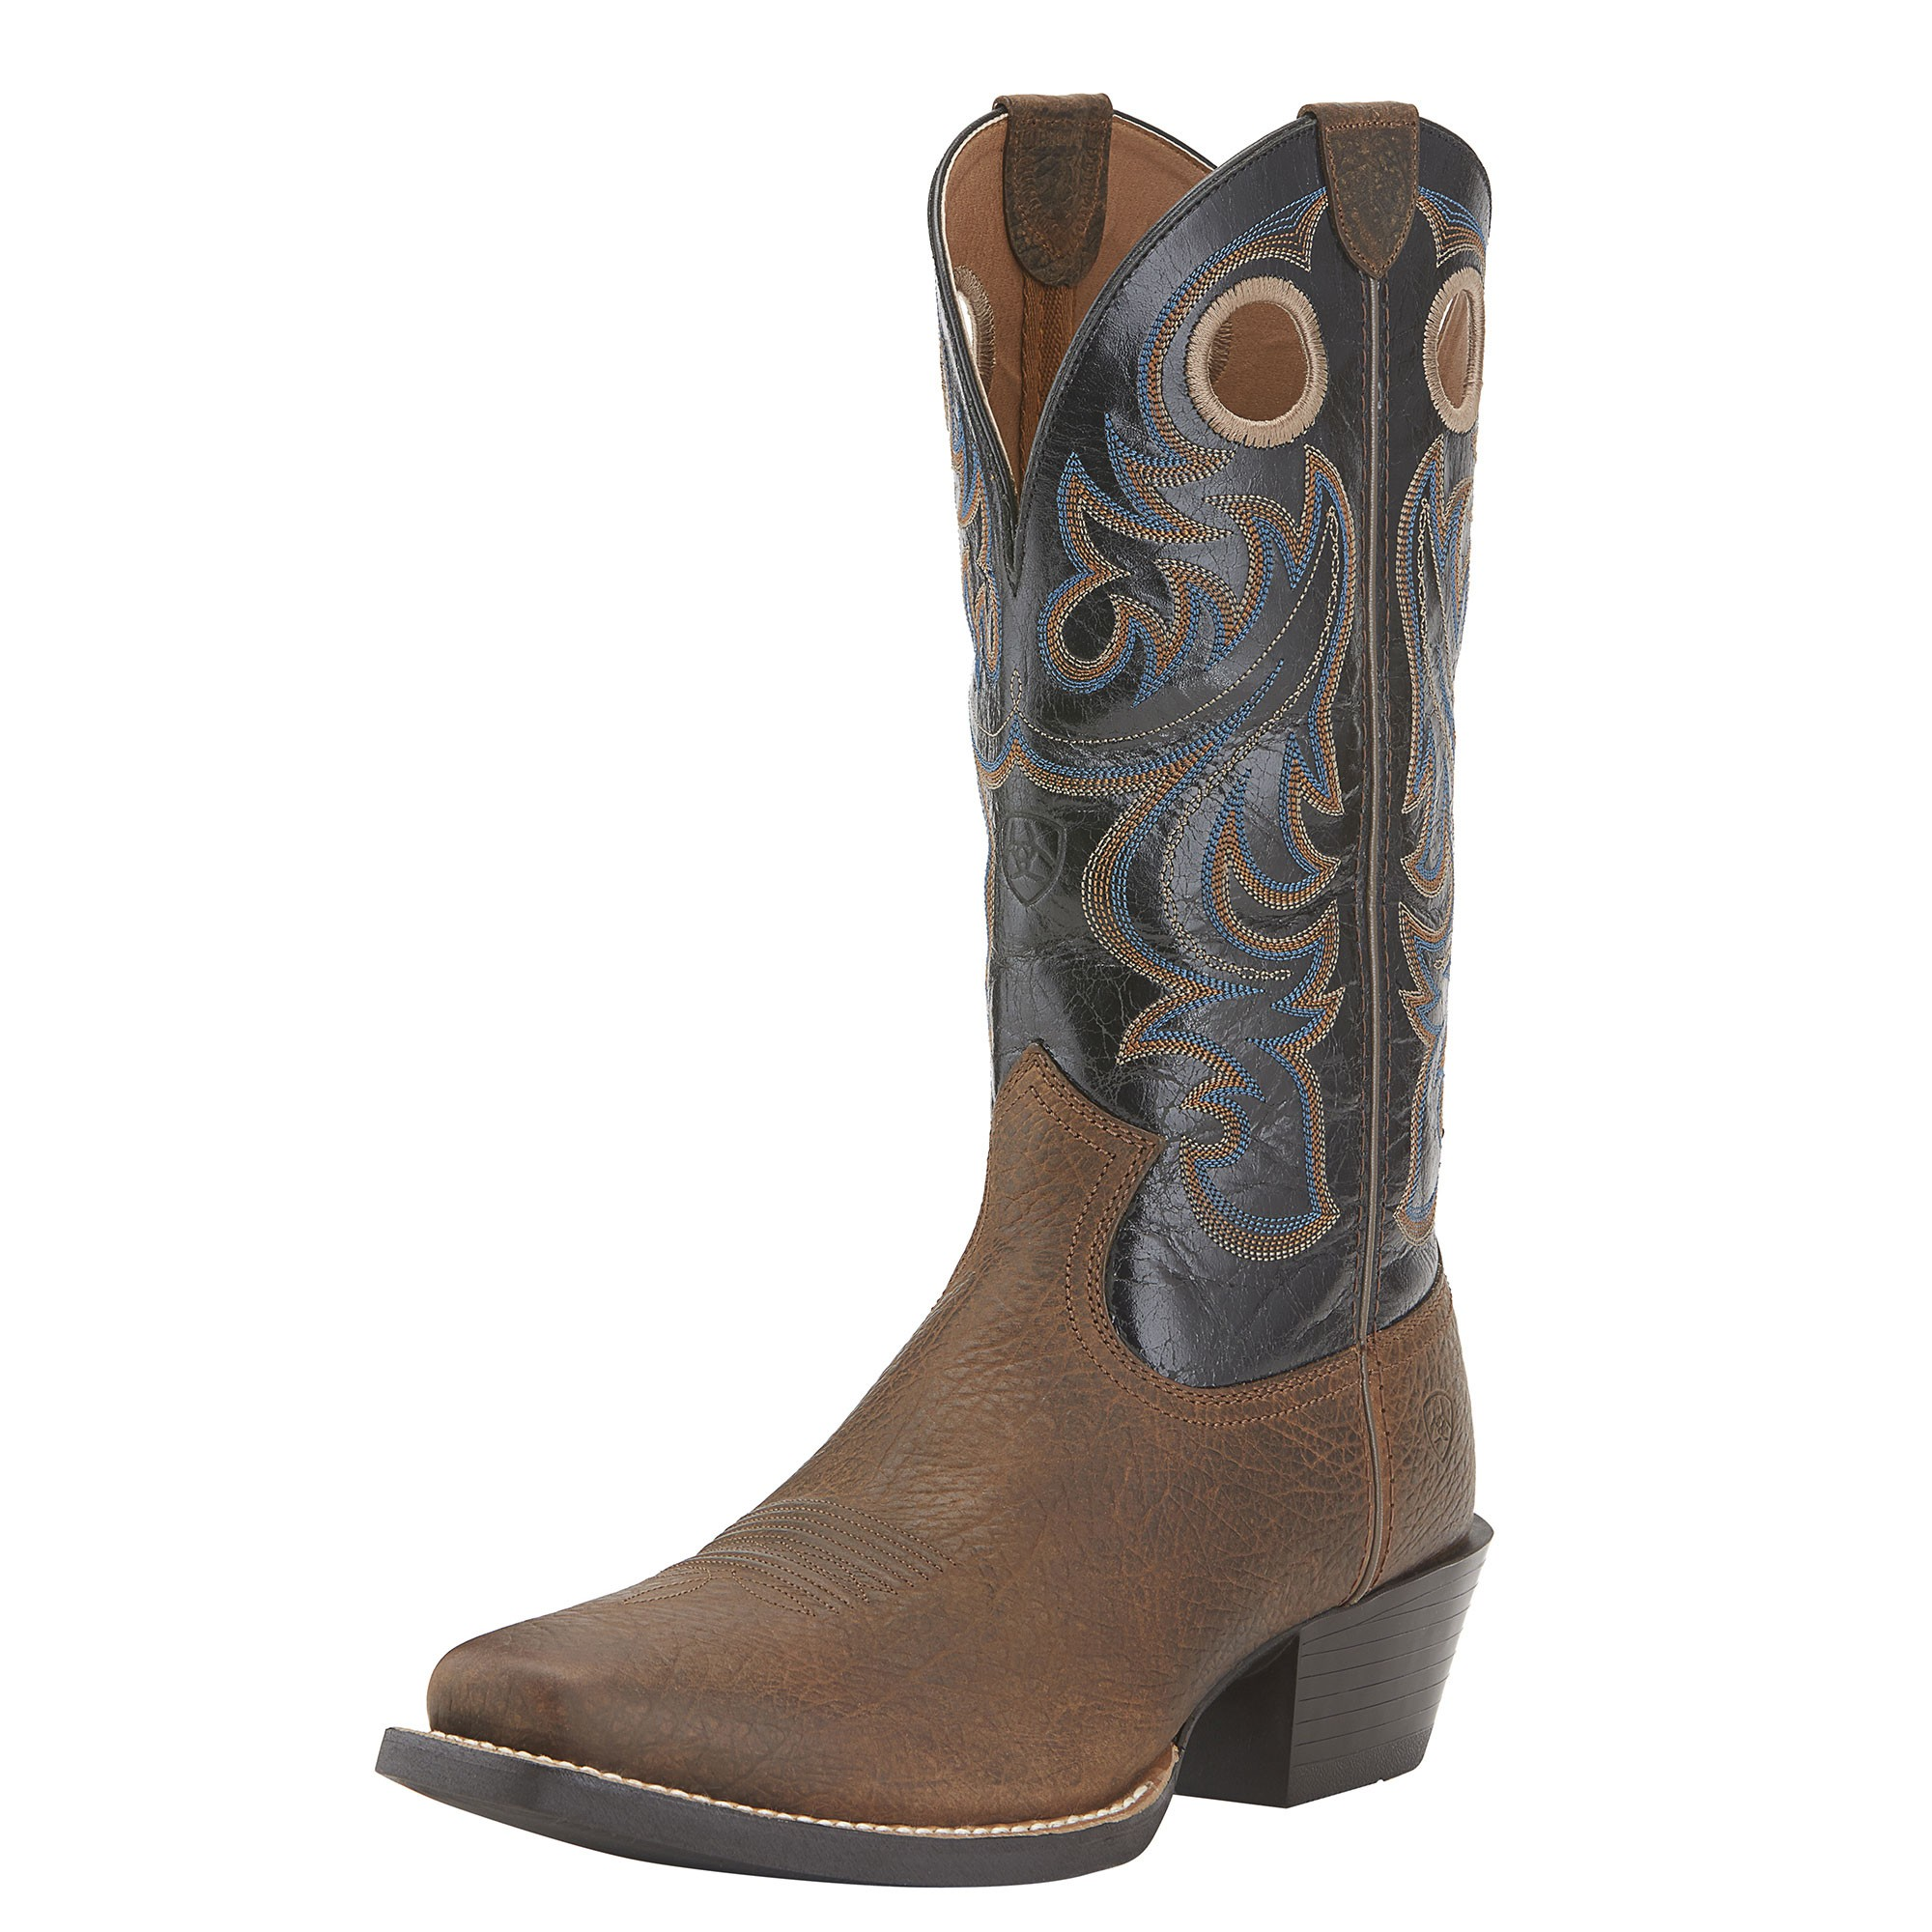 Where Are Ariat Boots Made cnYv82fh